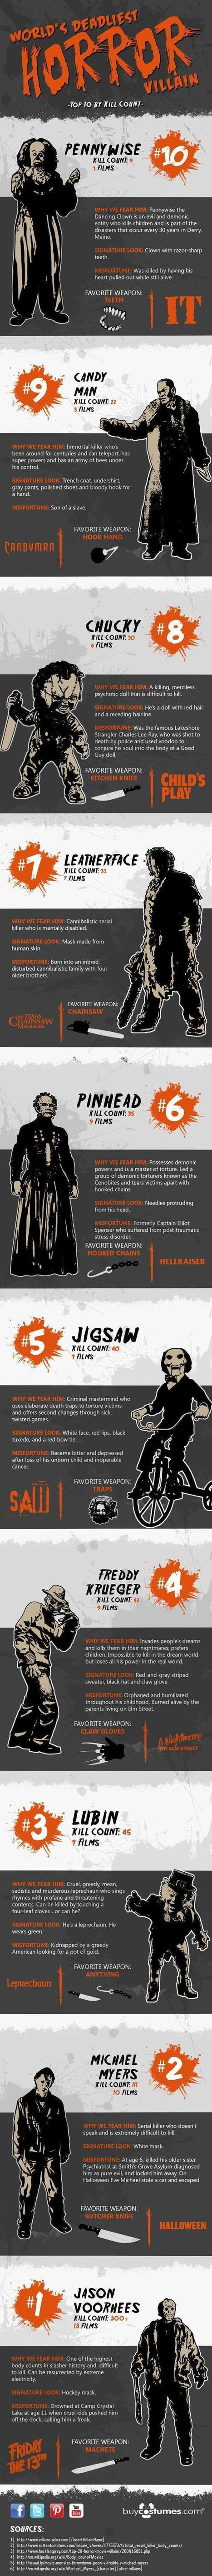 Top 10 Worlds Deadliest Horror Movie Villains | Sci-Fi, Fantasy, Horror Movies and Films | Scoop.it